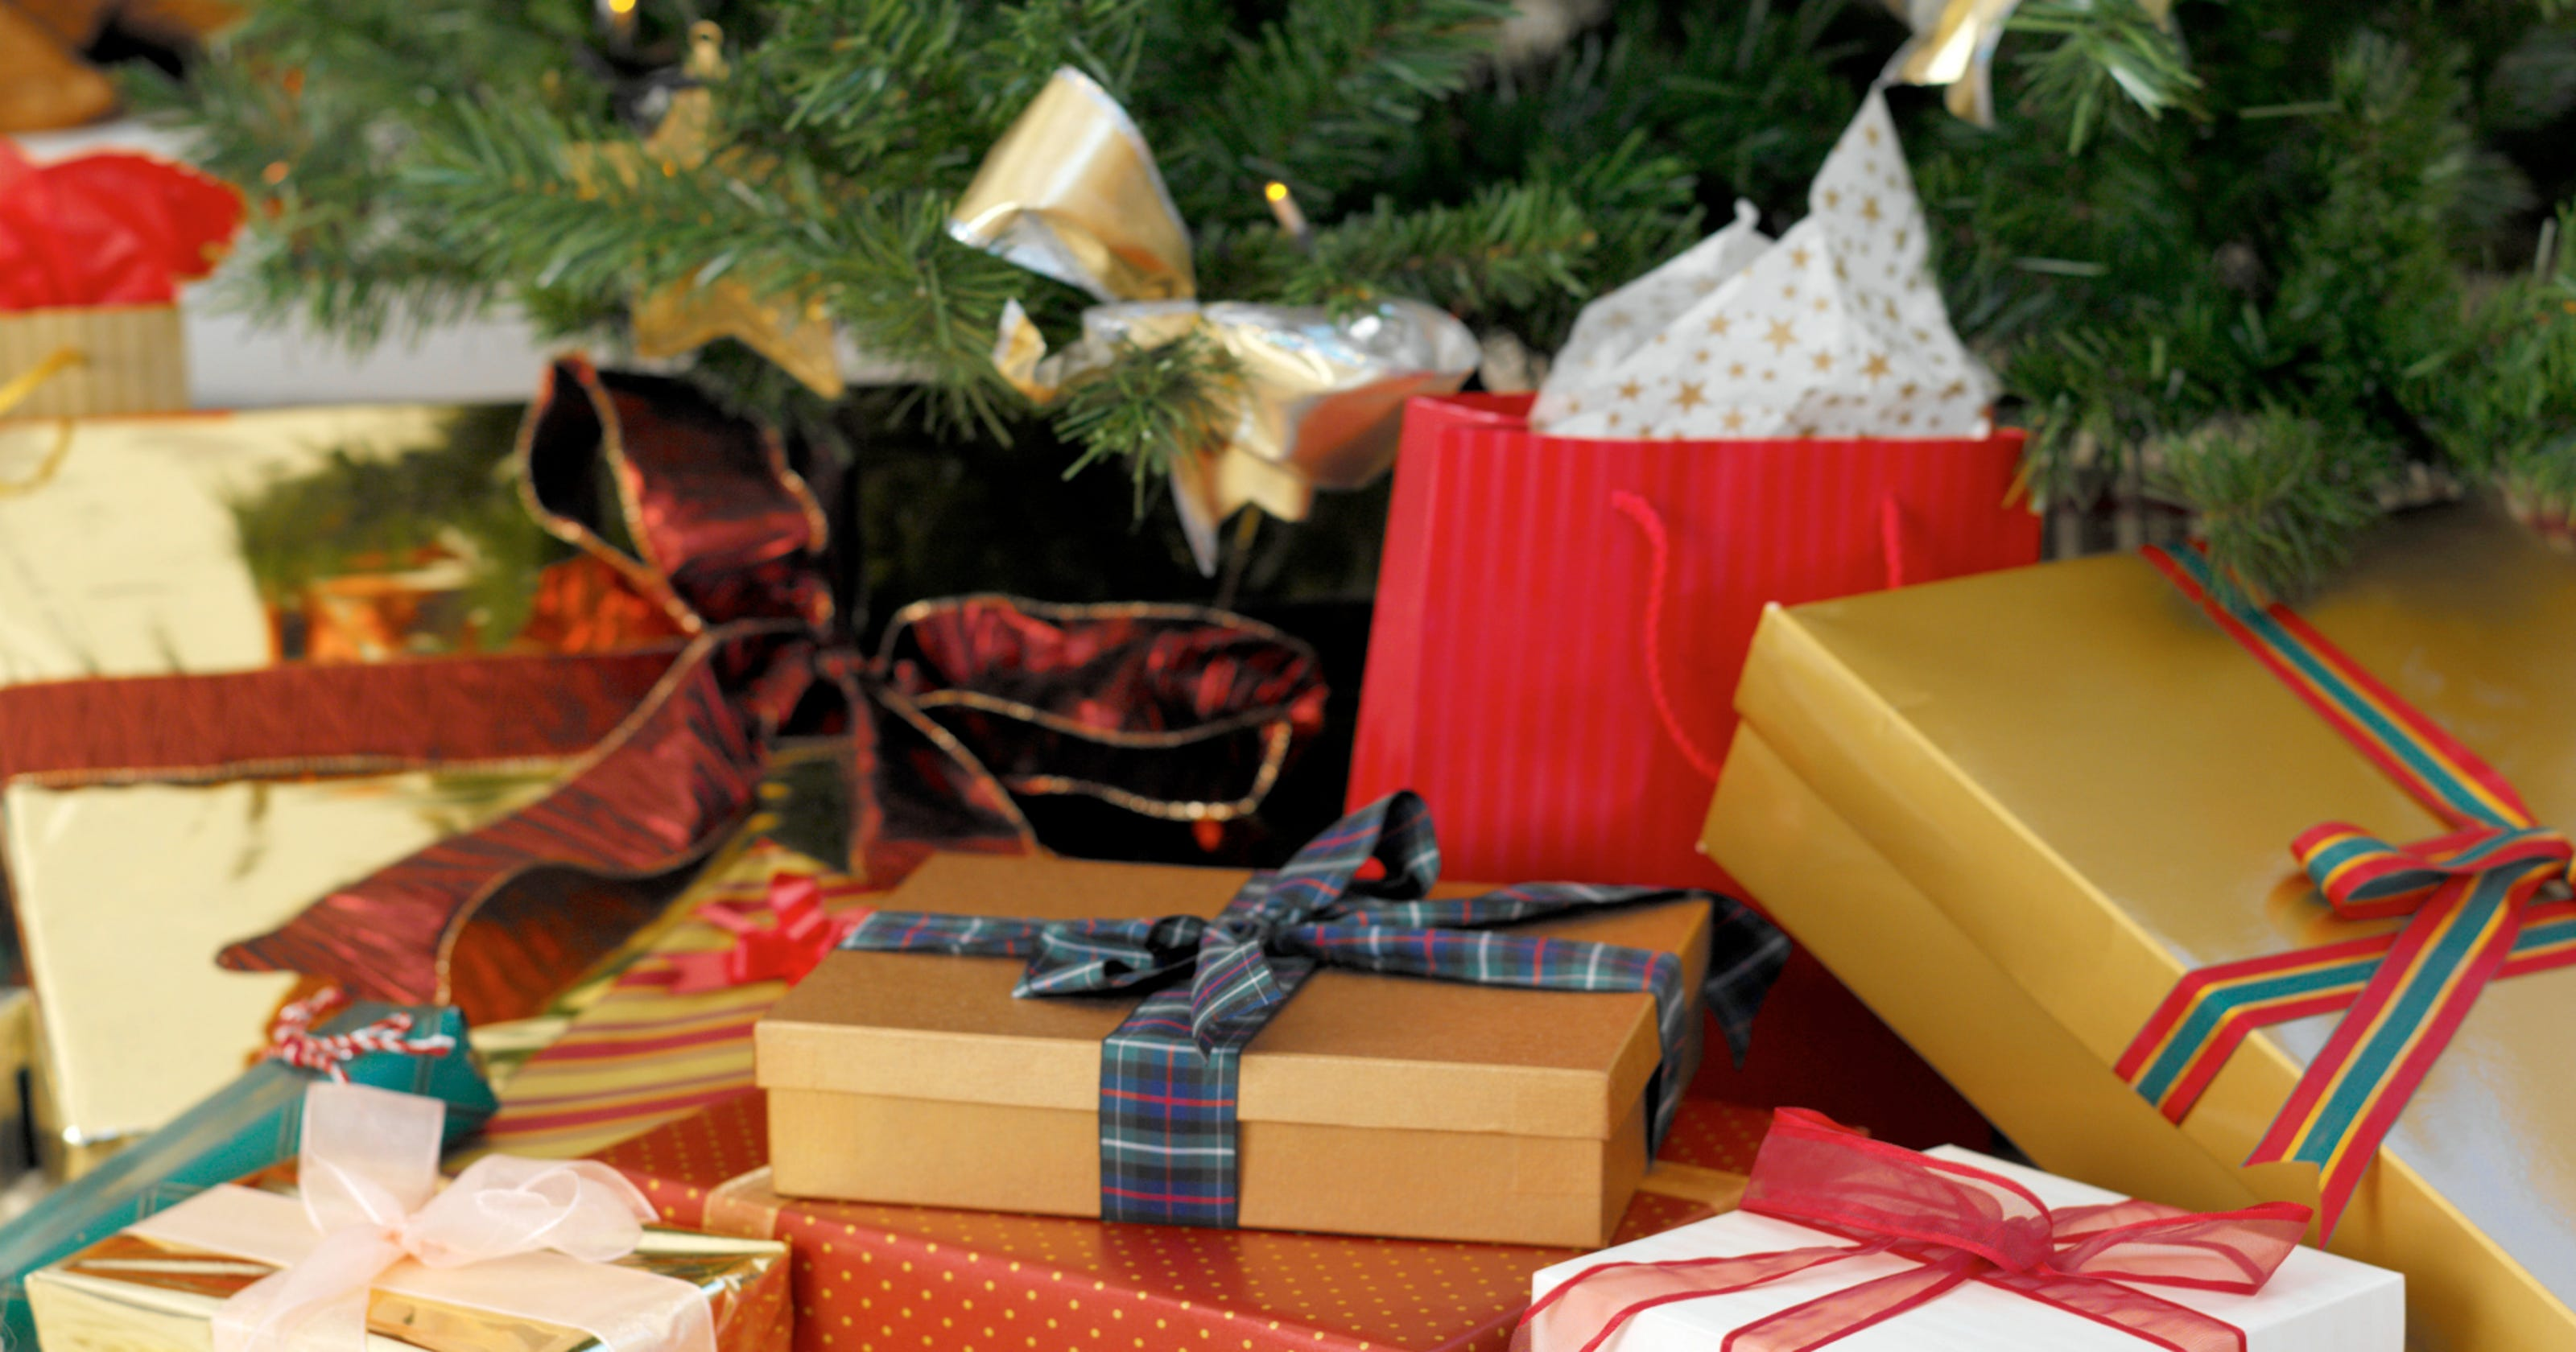 Amazon Christmas gifts: How to keep presents a secret until Dec. 25